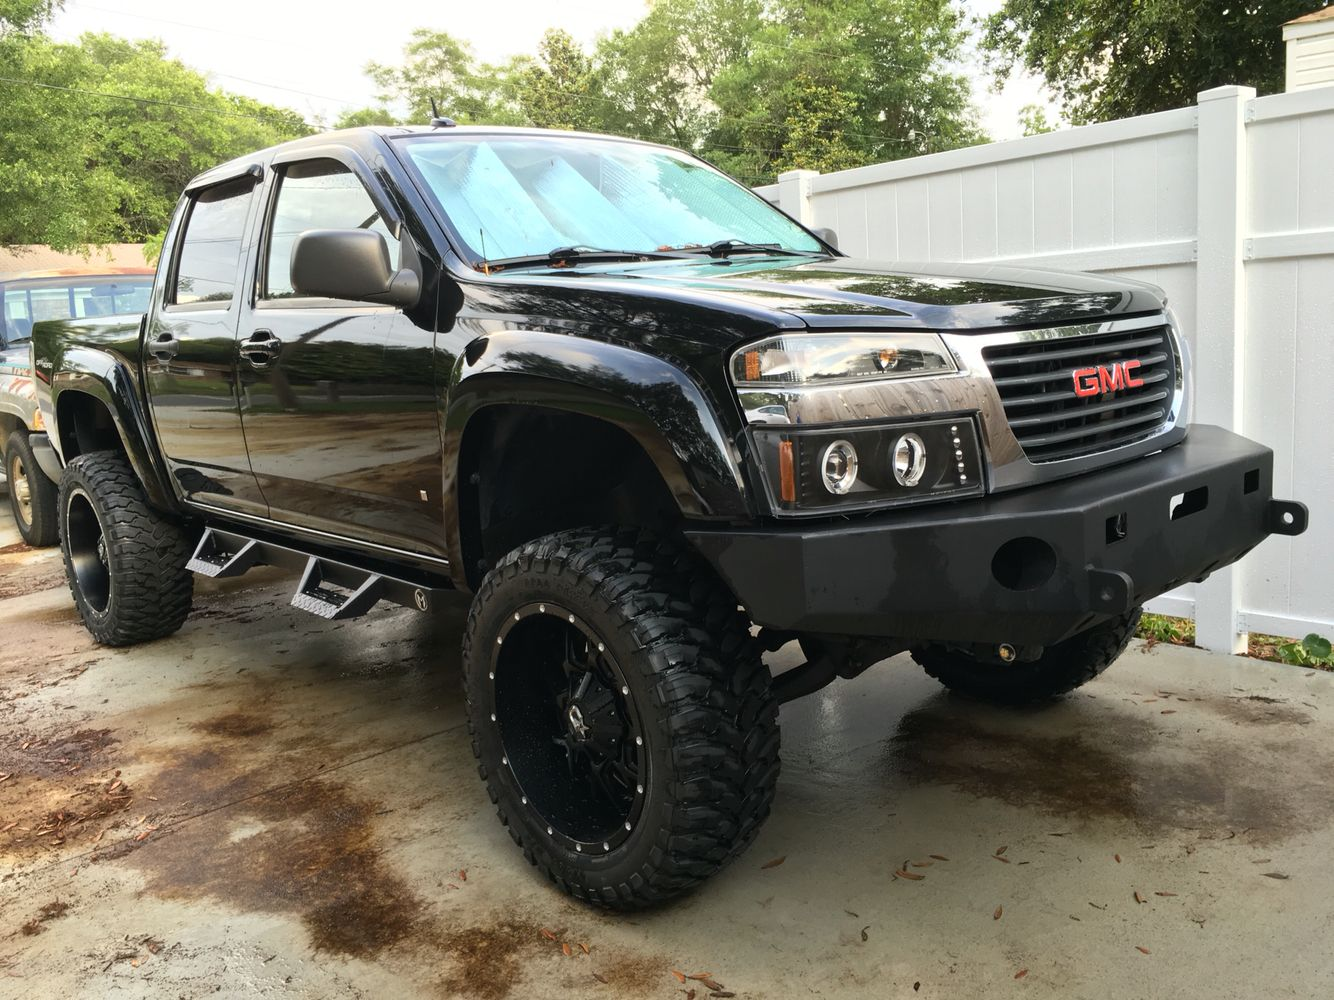 Lifted 2008 gmc canyon chevy colorado on 33 inch tires and 20 inch rims